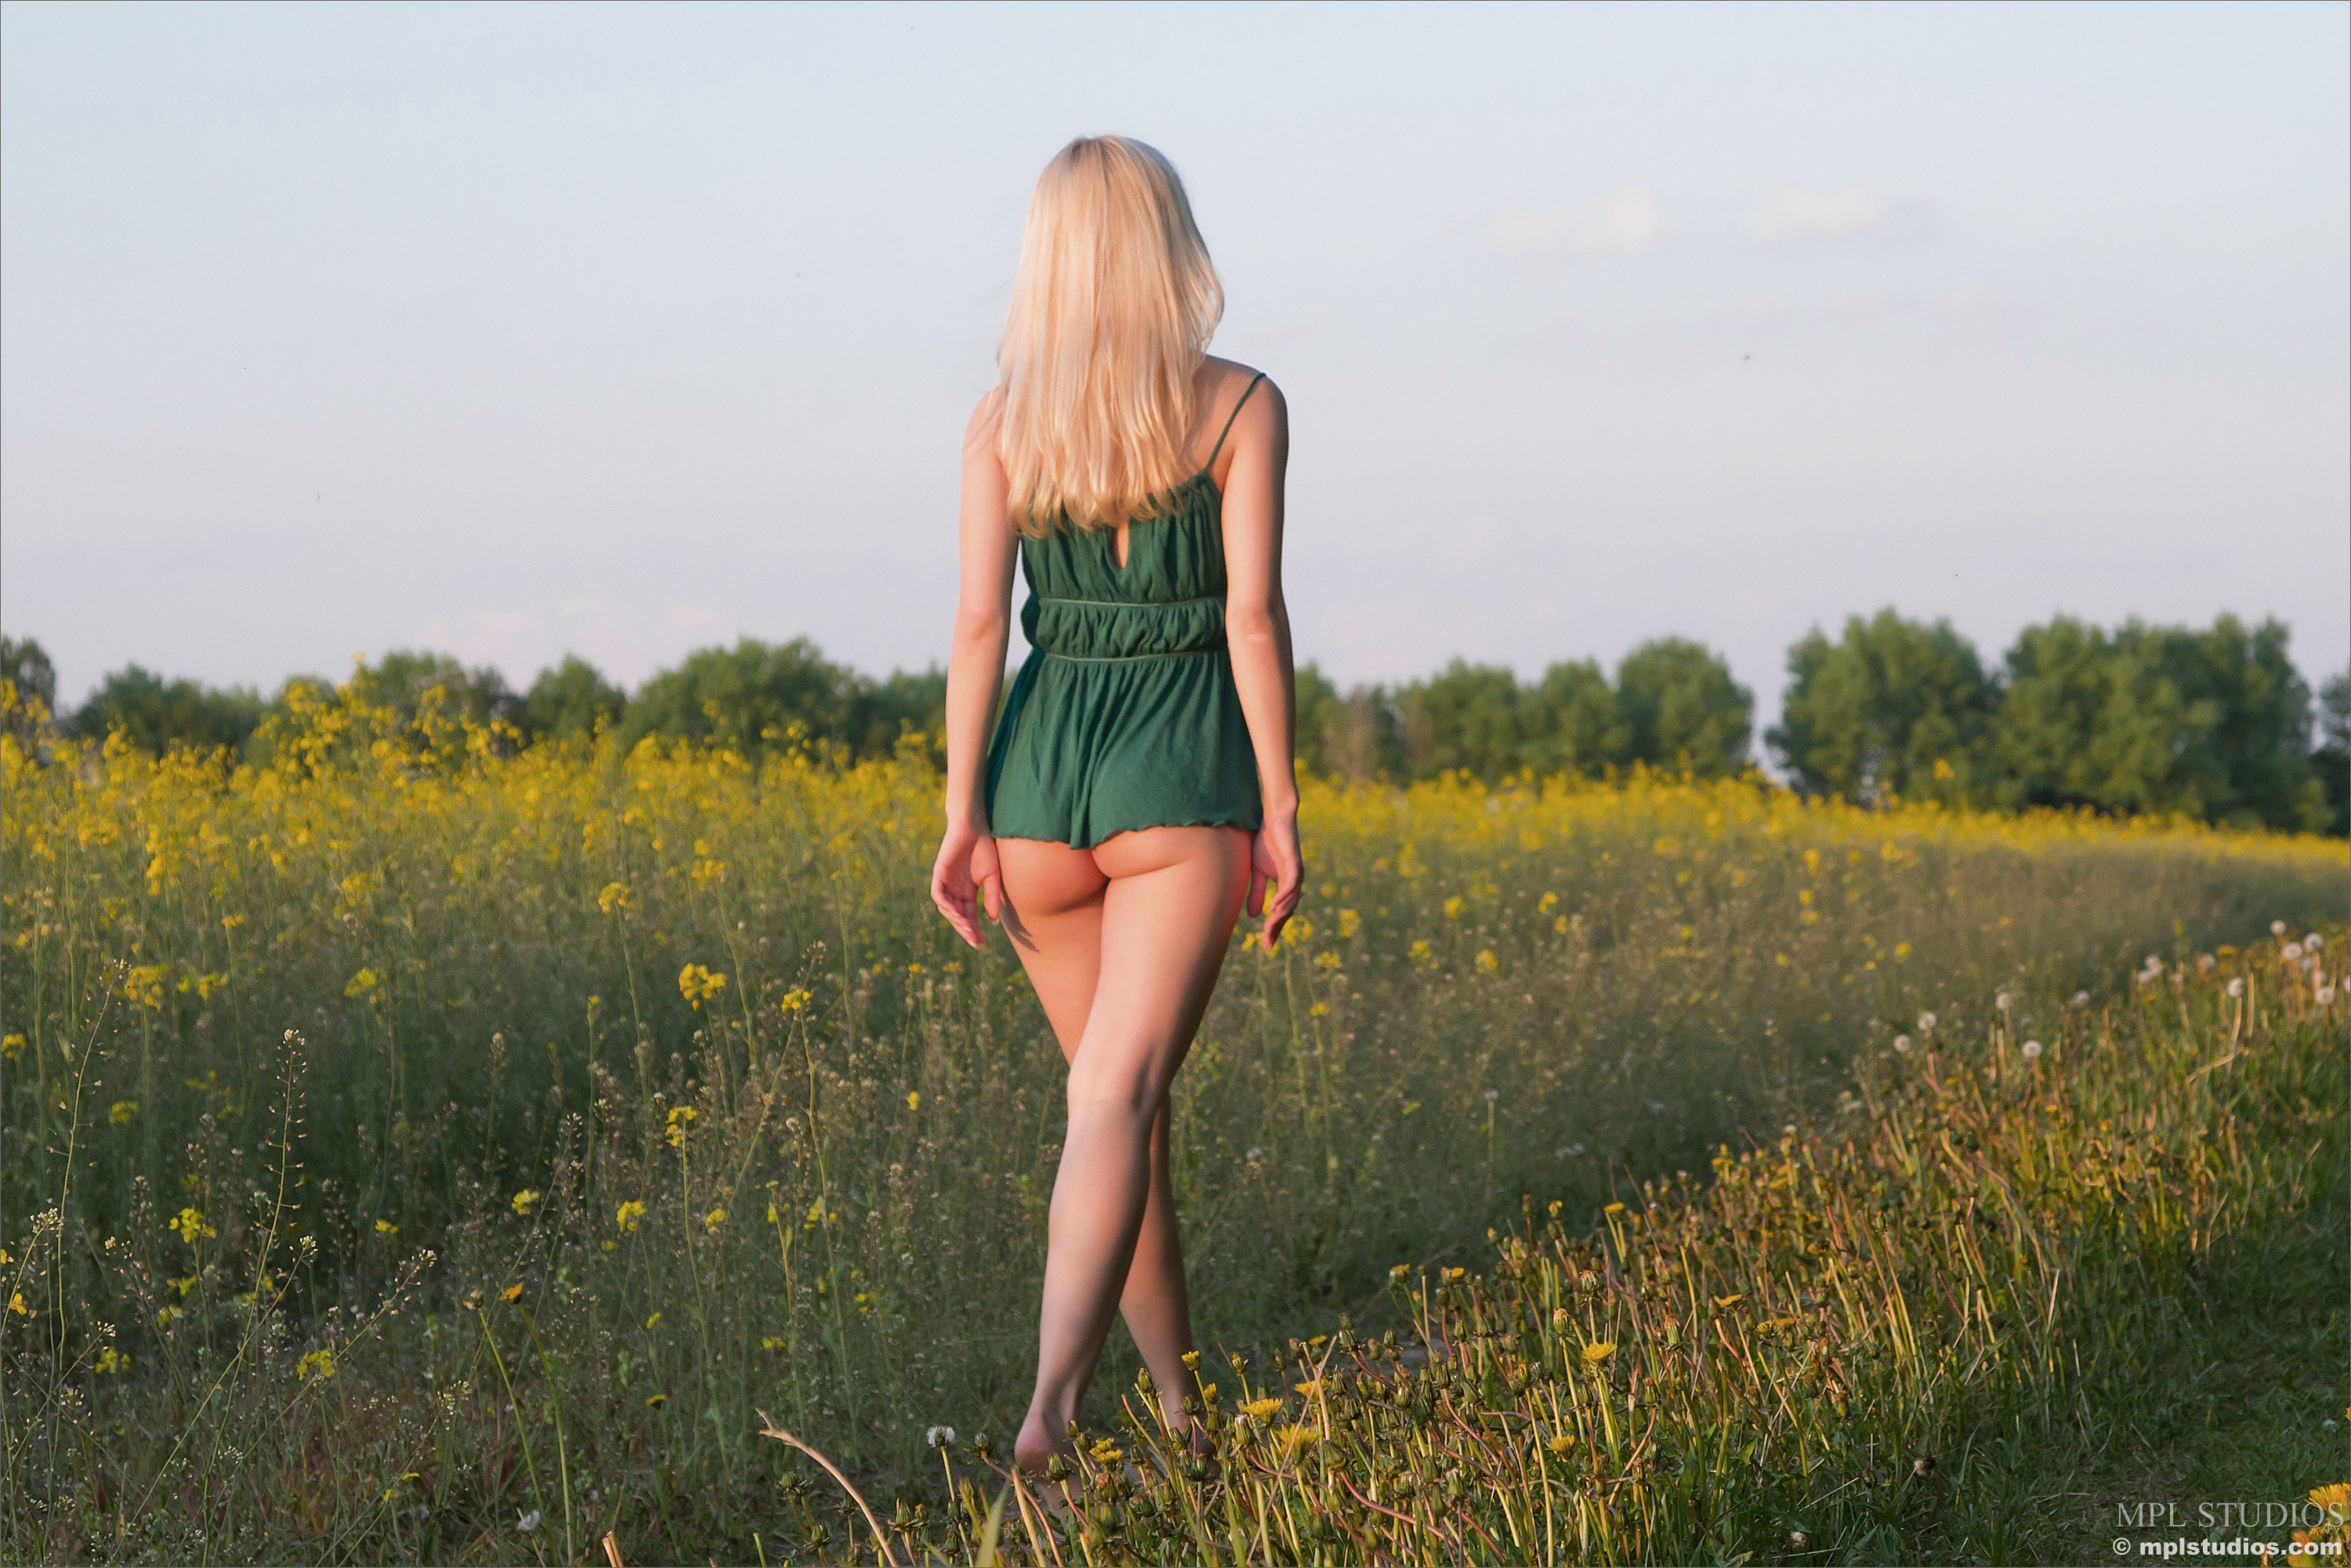 blondes legs woman walk HD Wallpaper